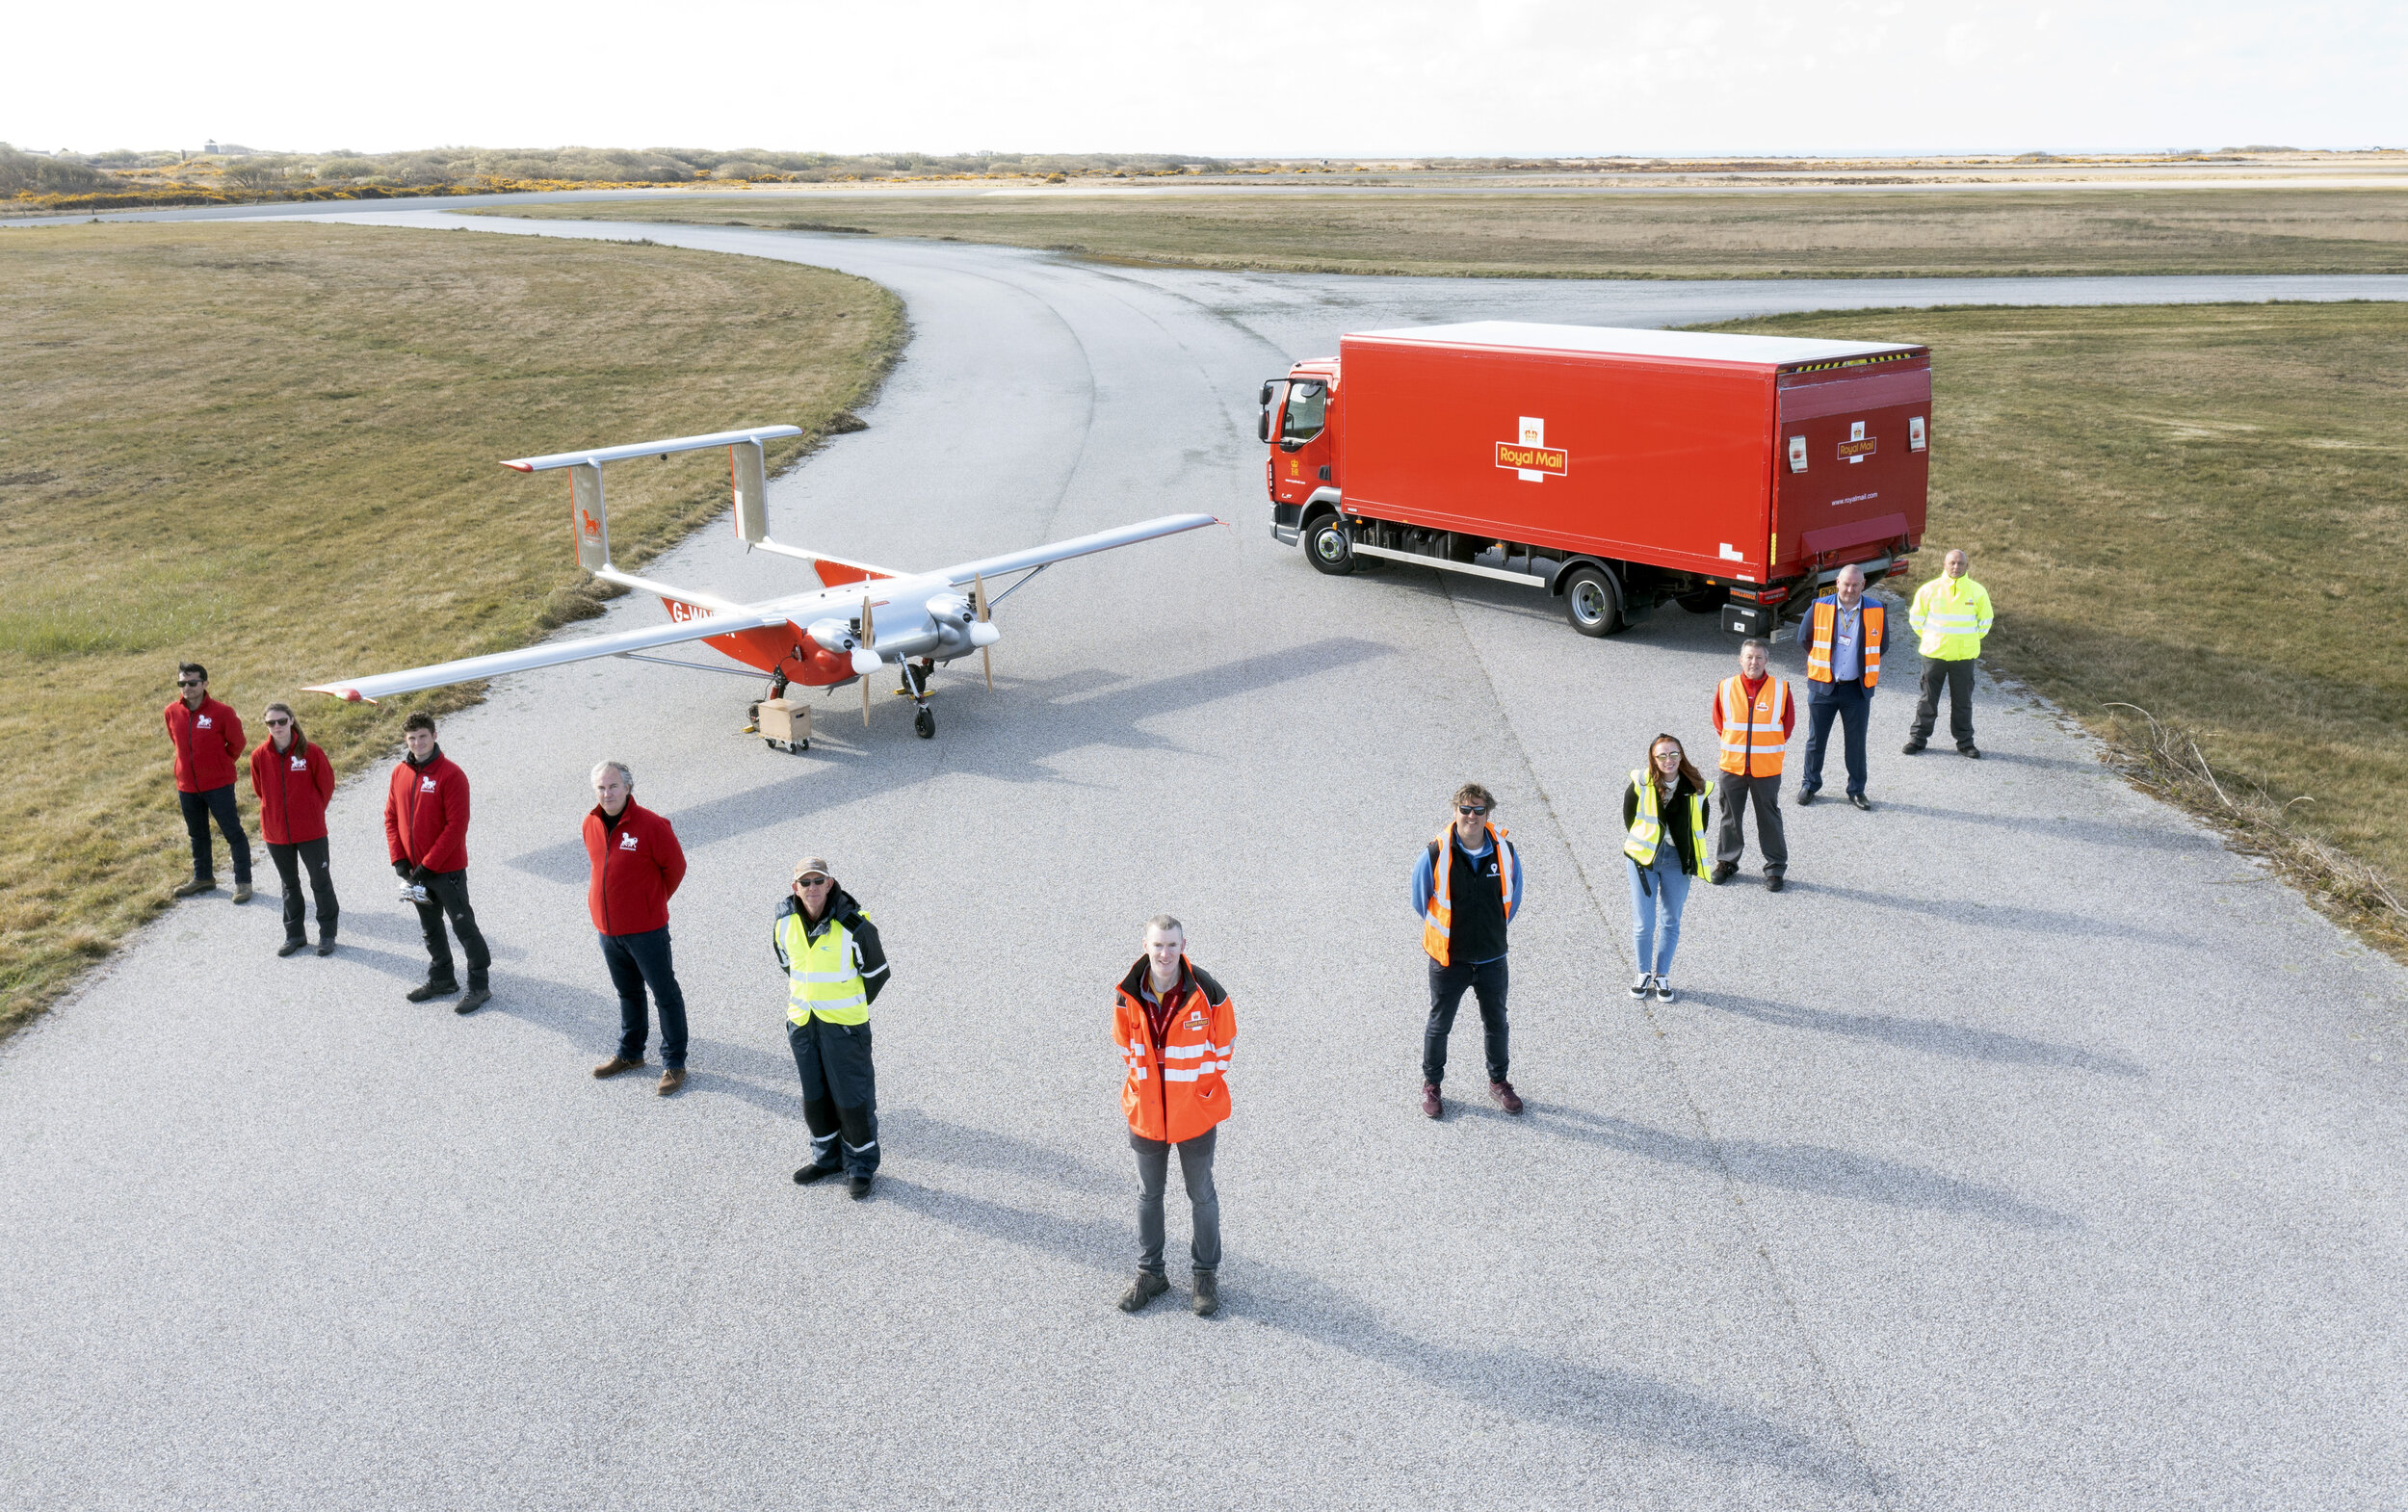 DronePrep & Royal Mail; Autonomous Drone Delivery to the Isles of Scilly